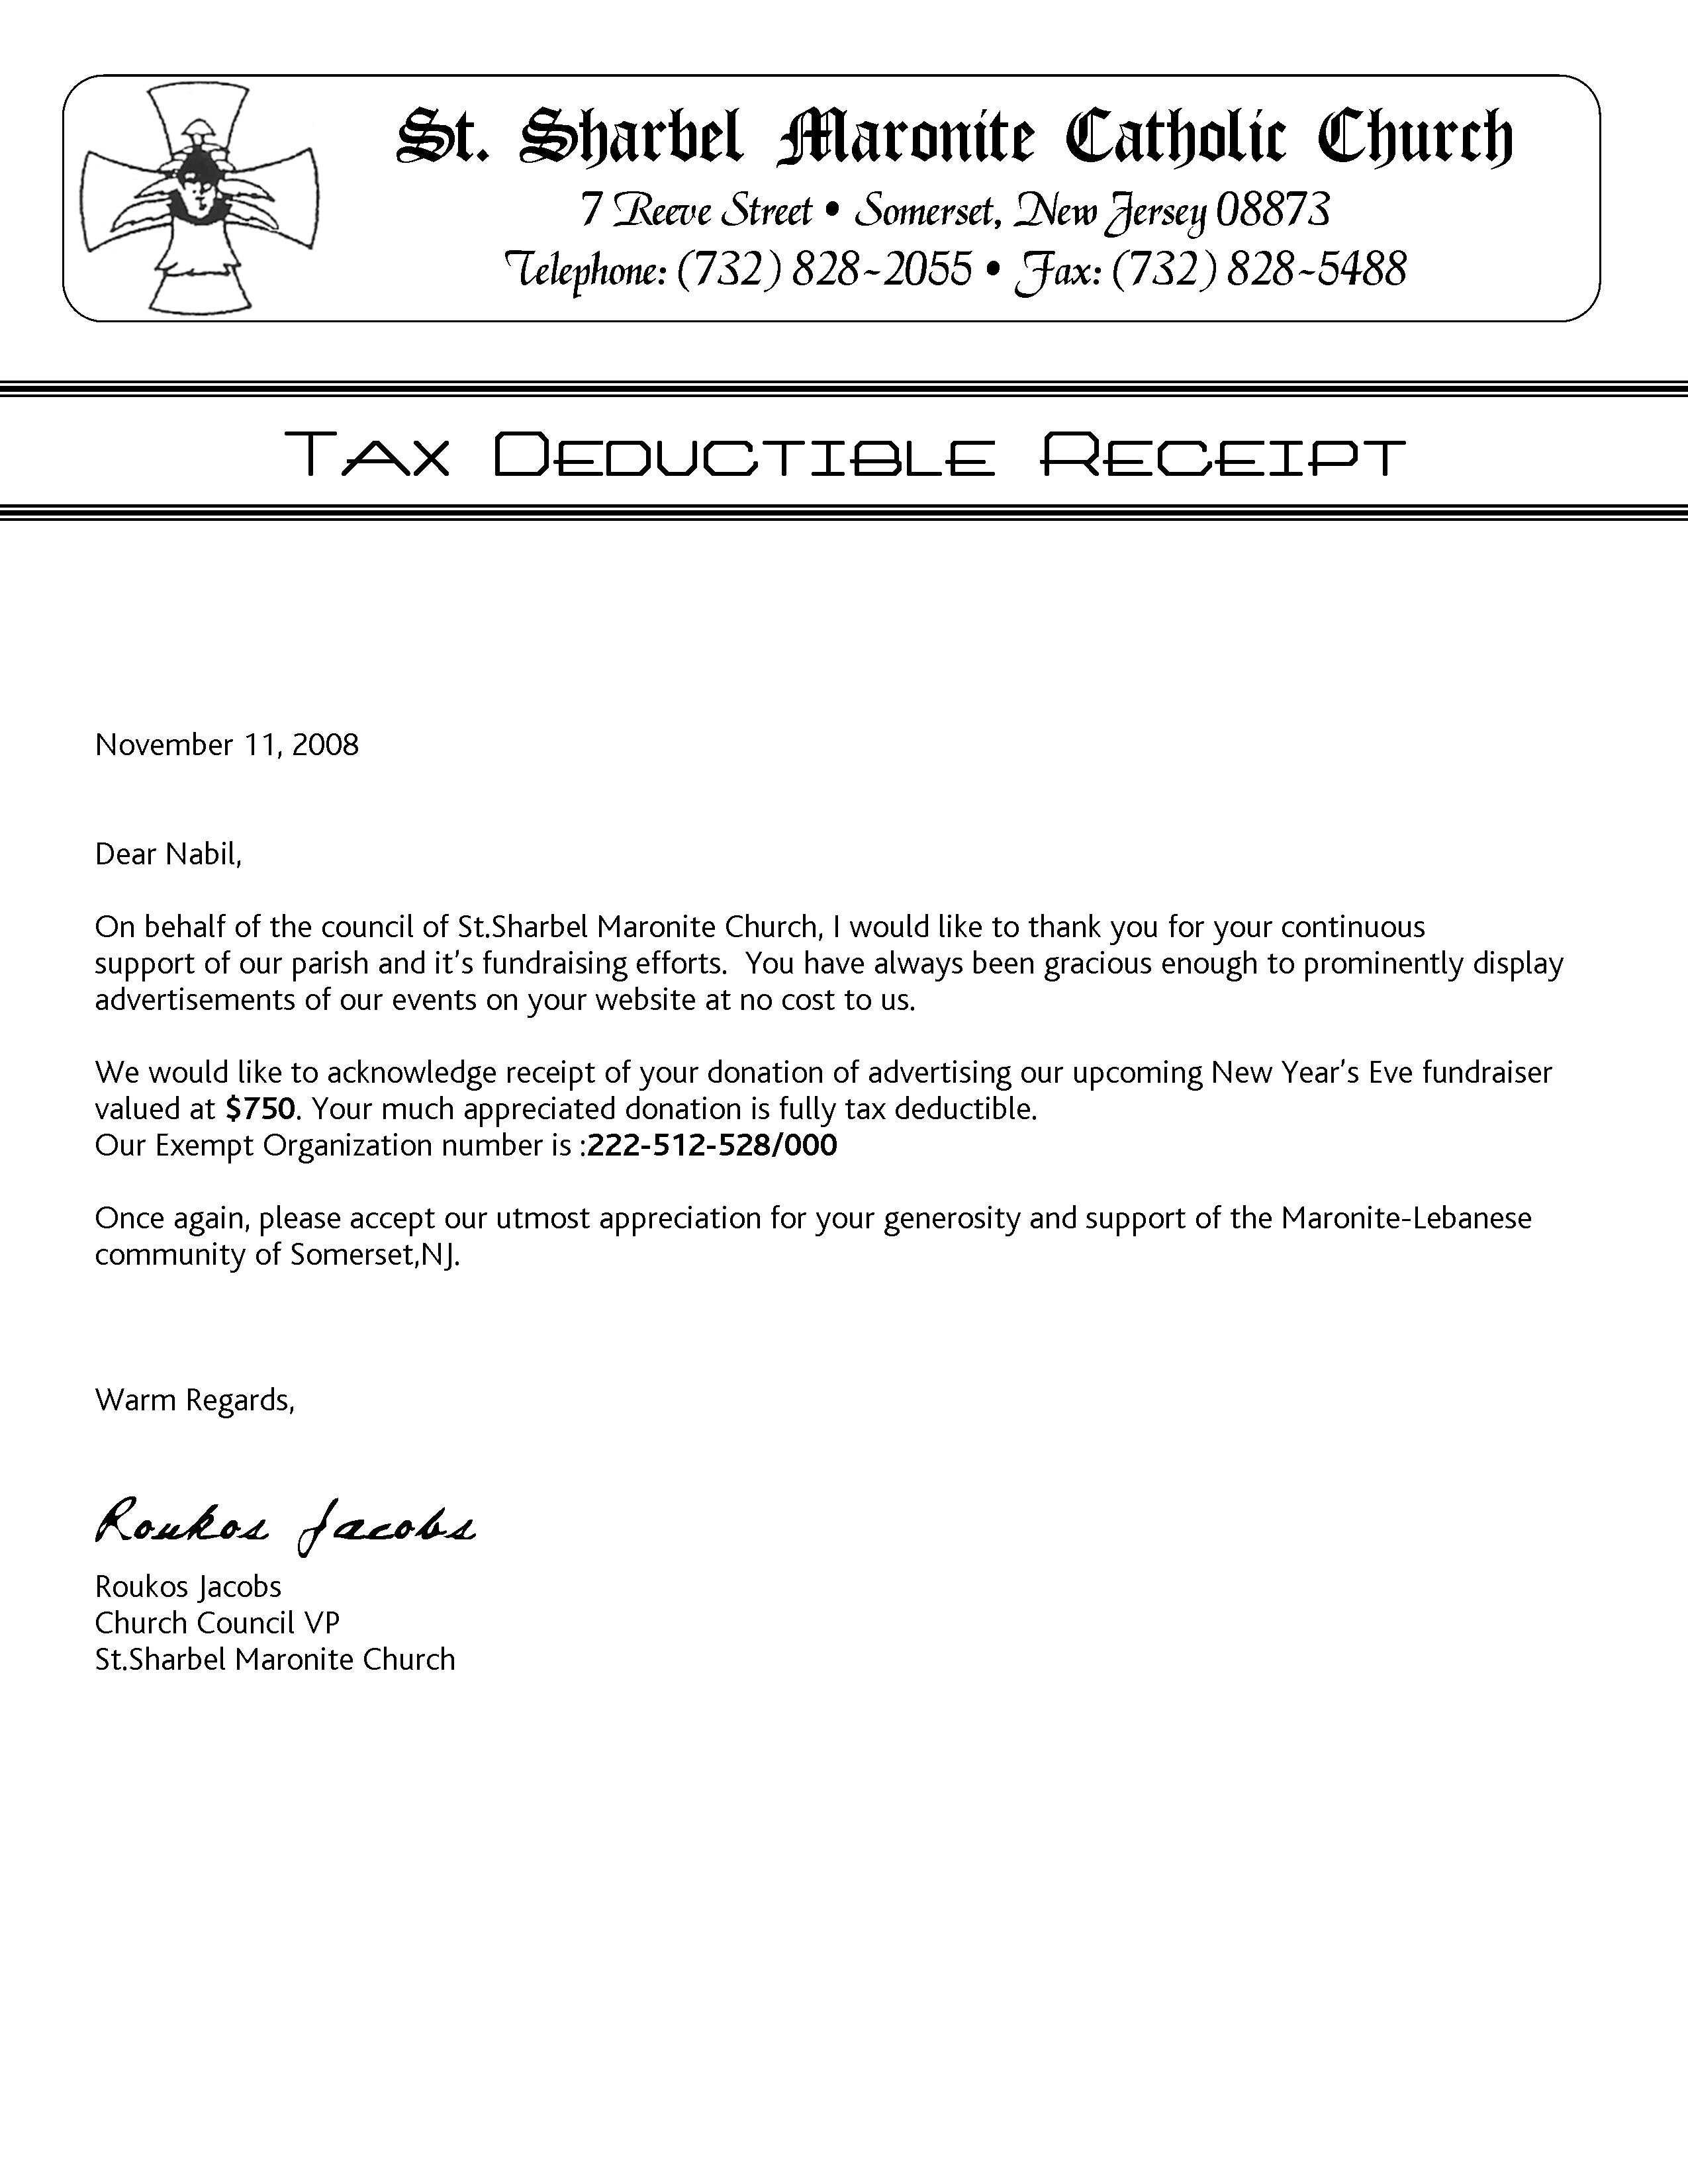 church donation letter for tax purposes template example-Church Donation Letter Template Fresh Church Donation Form Template As Well As Index Cdn 12 2006 721 6-s